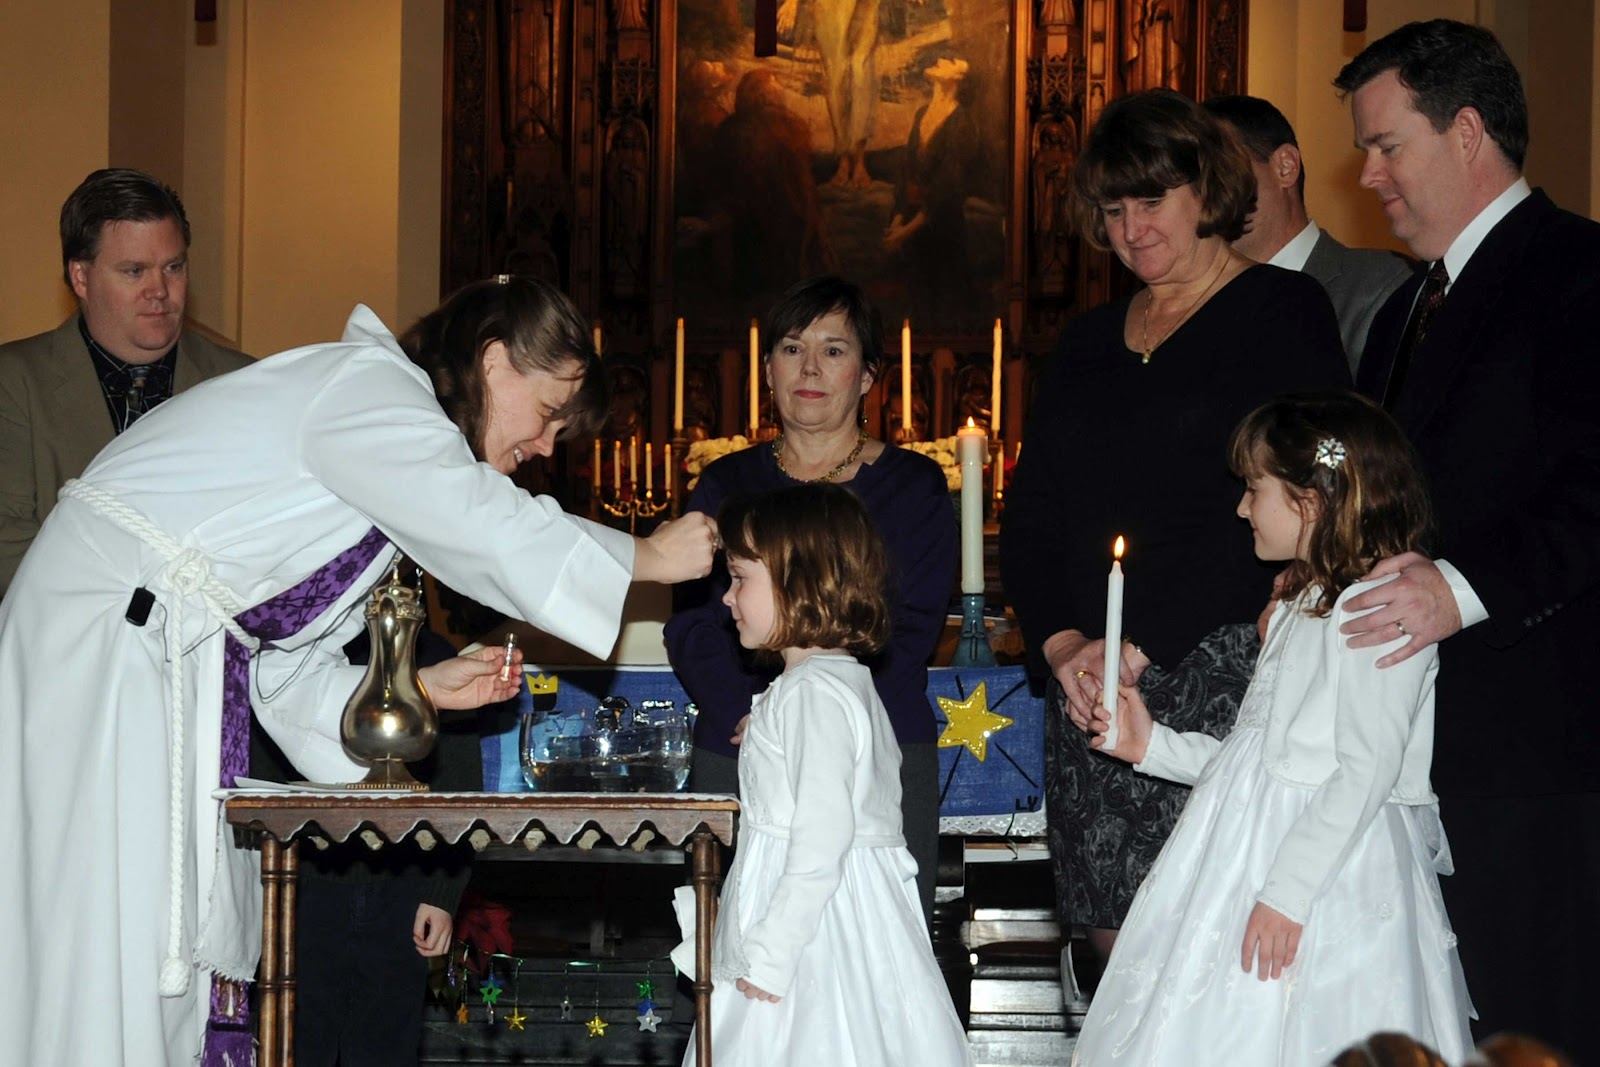 Falling in love with truth ceremony of lighting candle following the symbols of cleansing with water anointing with holy oil and clothing with white garment the symbolism of light is rich and meaningful buycottarizona Gallery